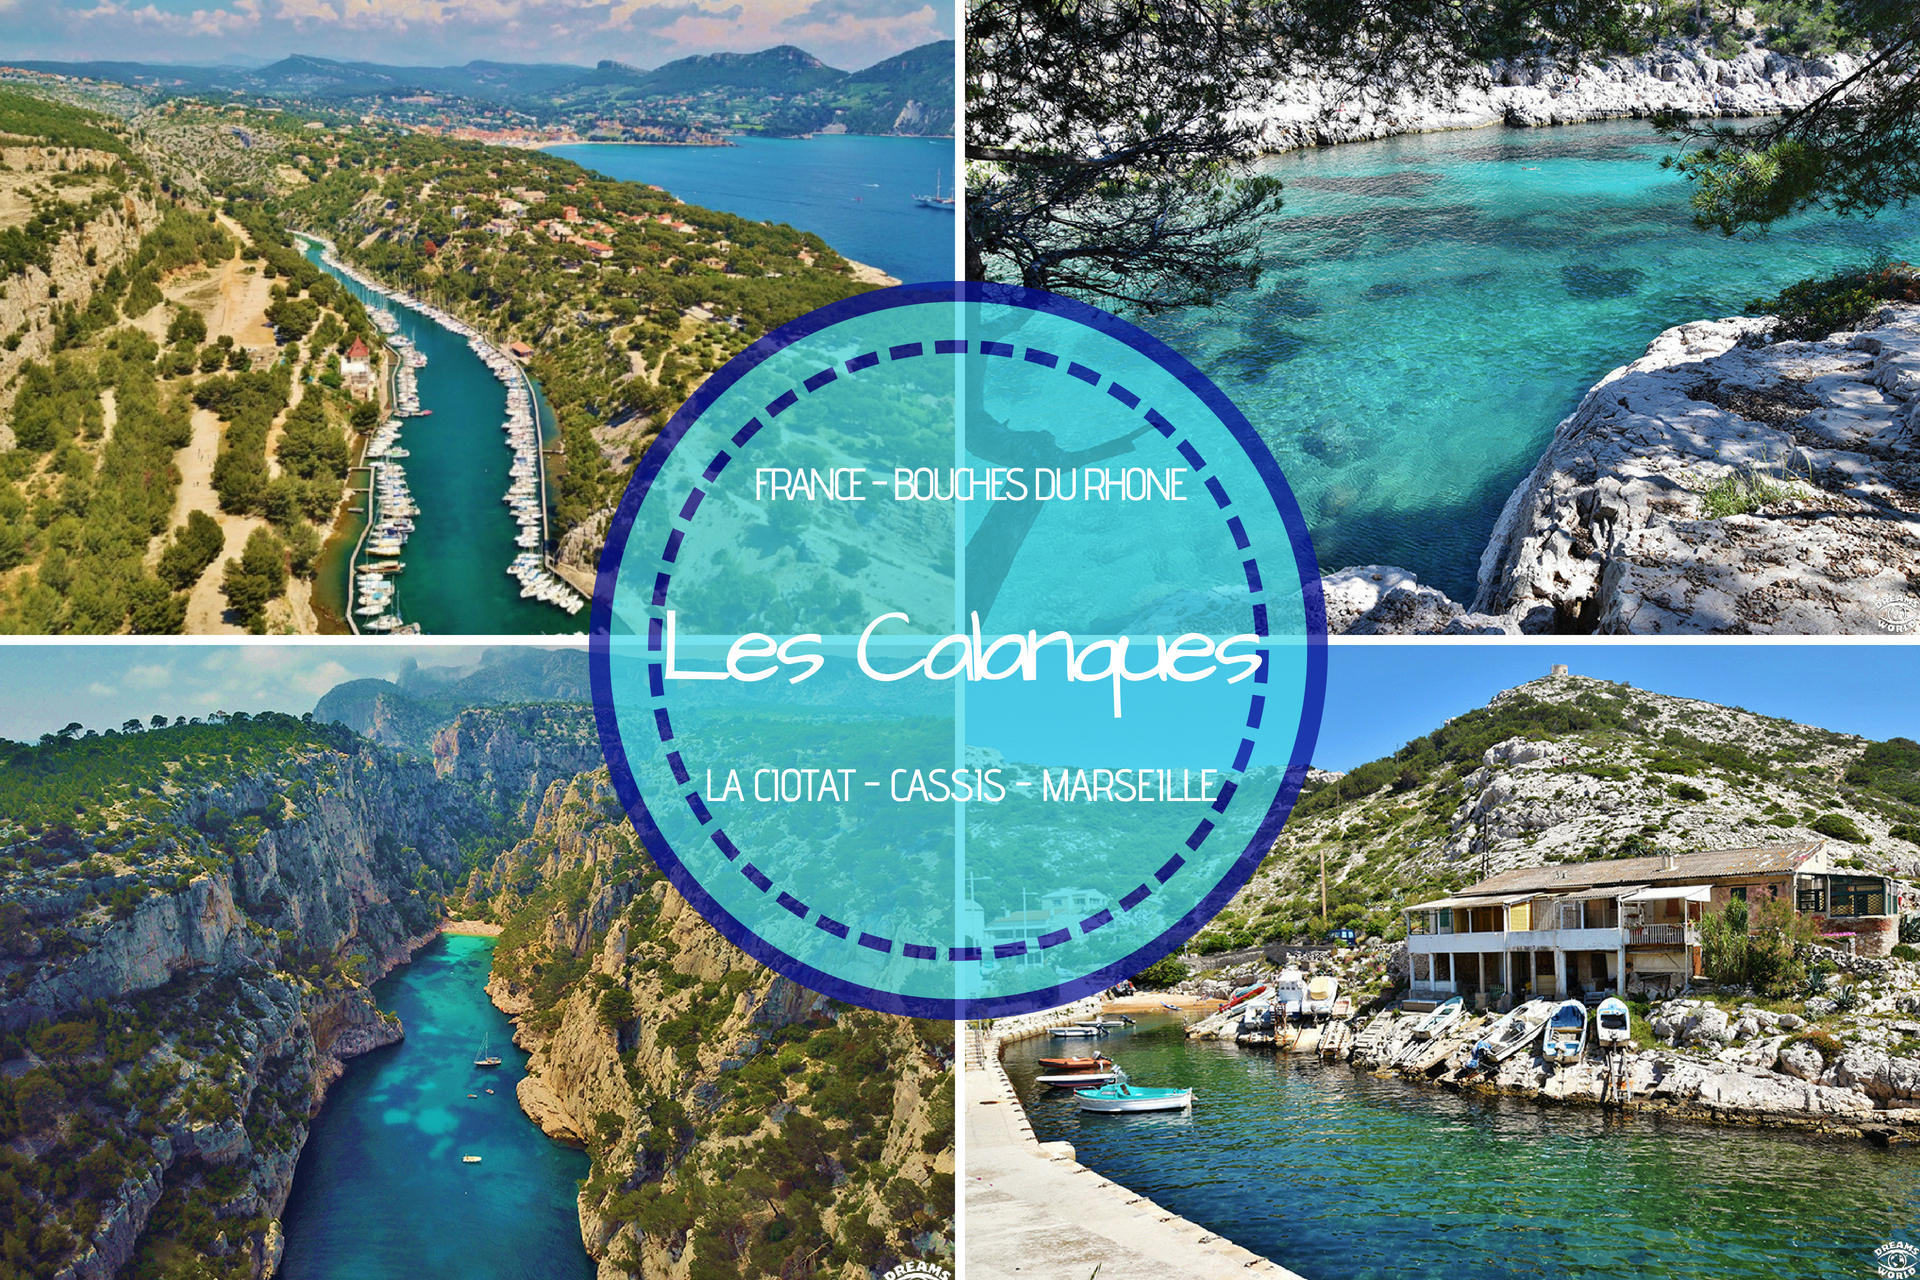 Les calanques La Ciotat Cassis & Marseille - Dreams World - Blog voyage